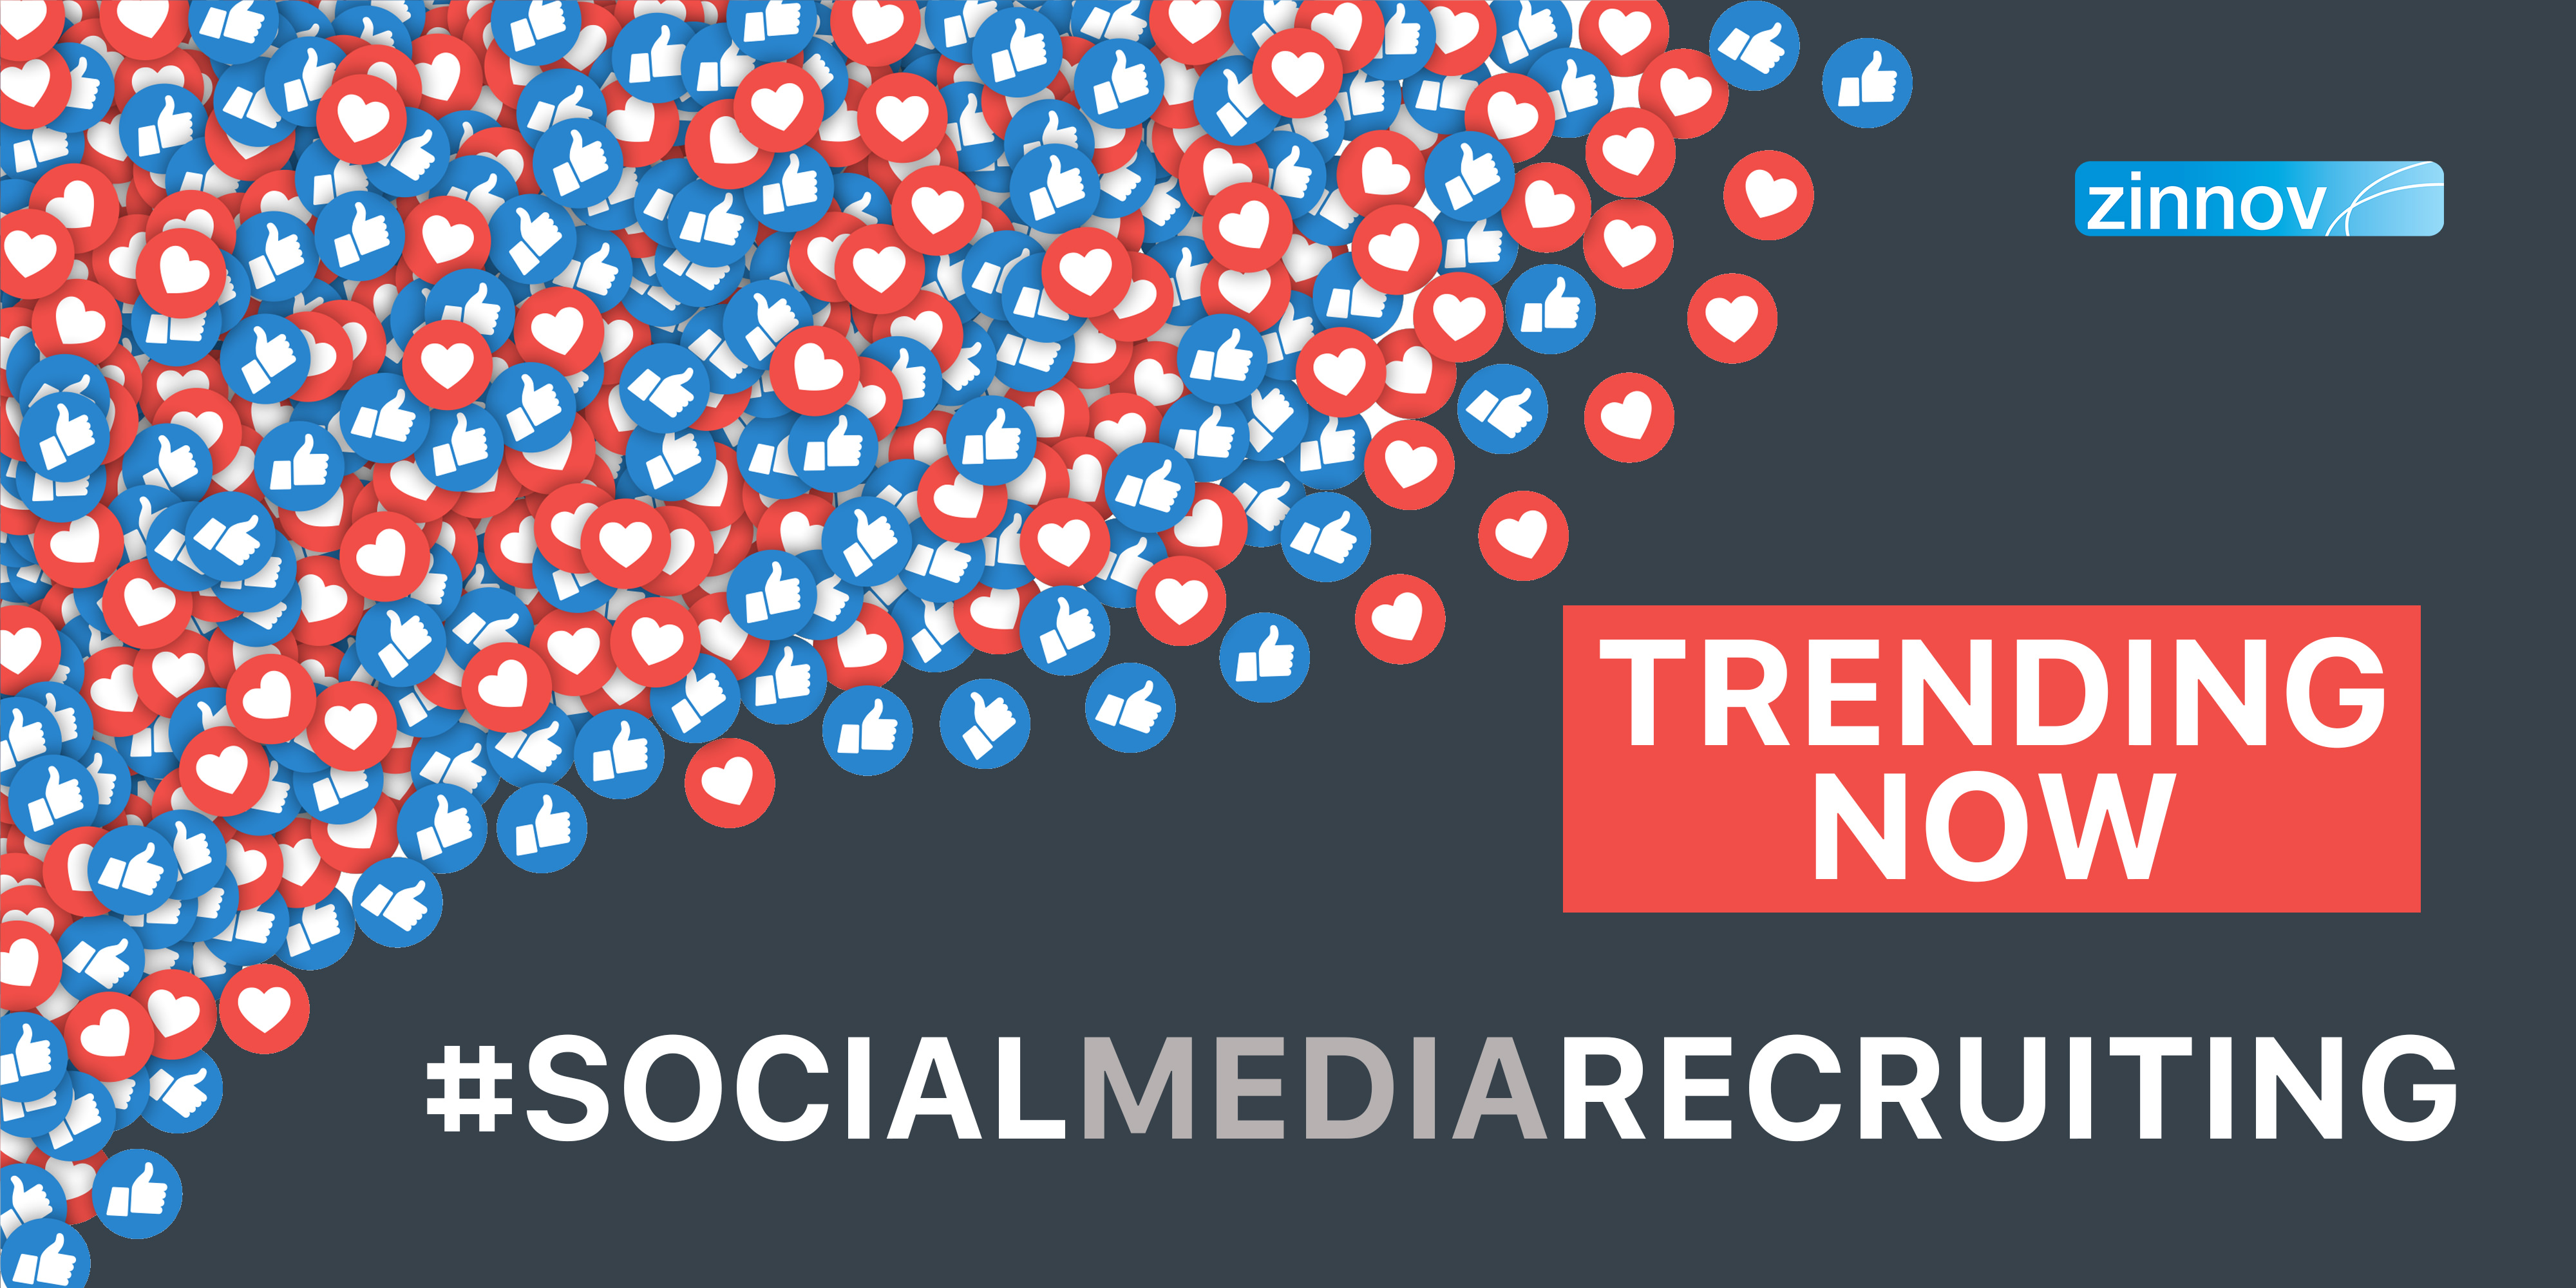 Social Media Recruiting - A Talent Acquisition Approach To Reckon With